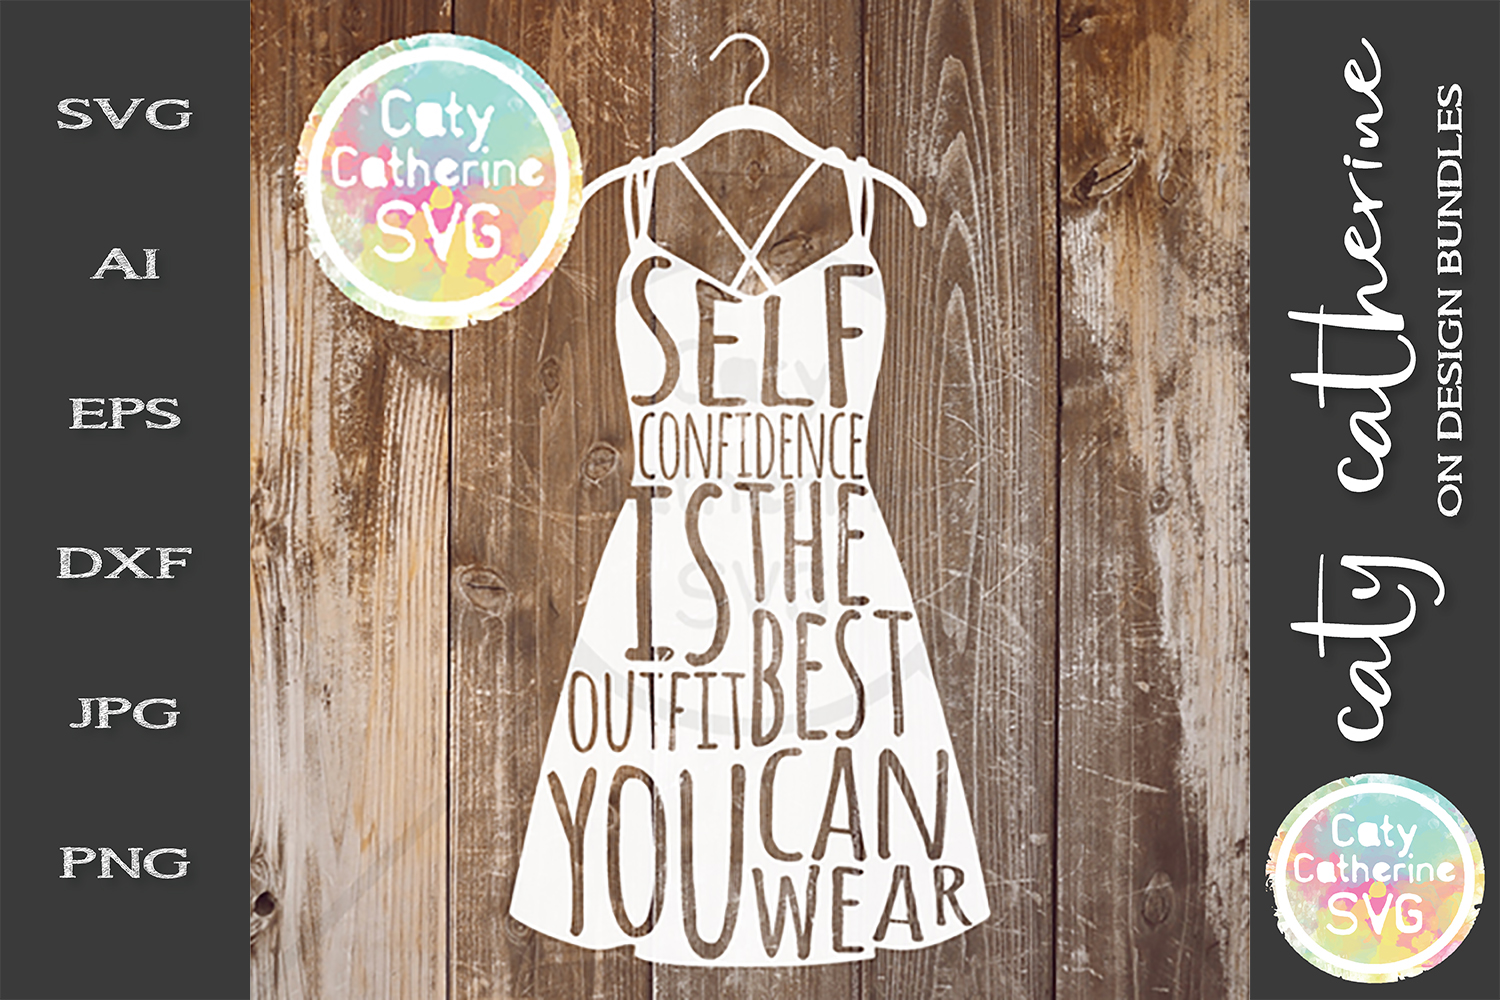 Self Confidence Is The Best Outfit You Can Wear SVG example image 1